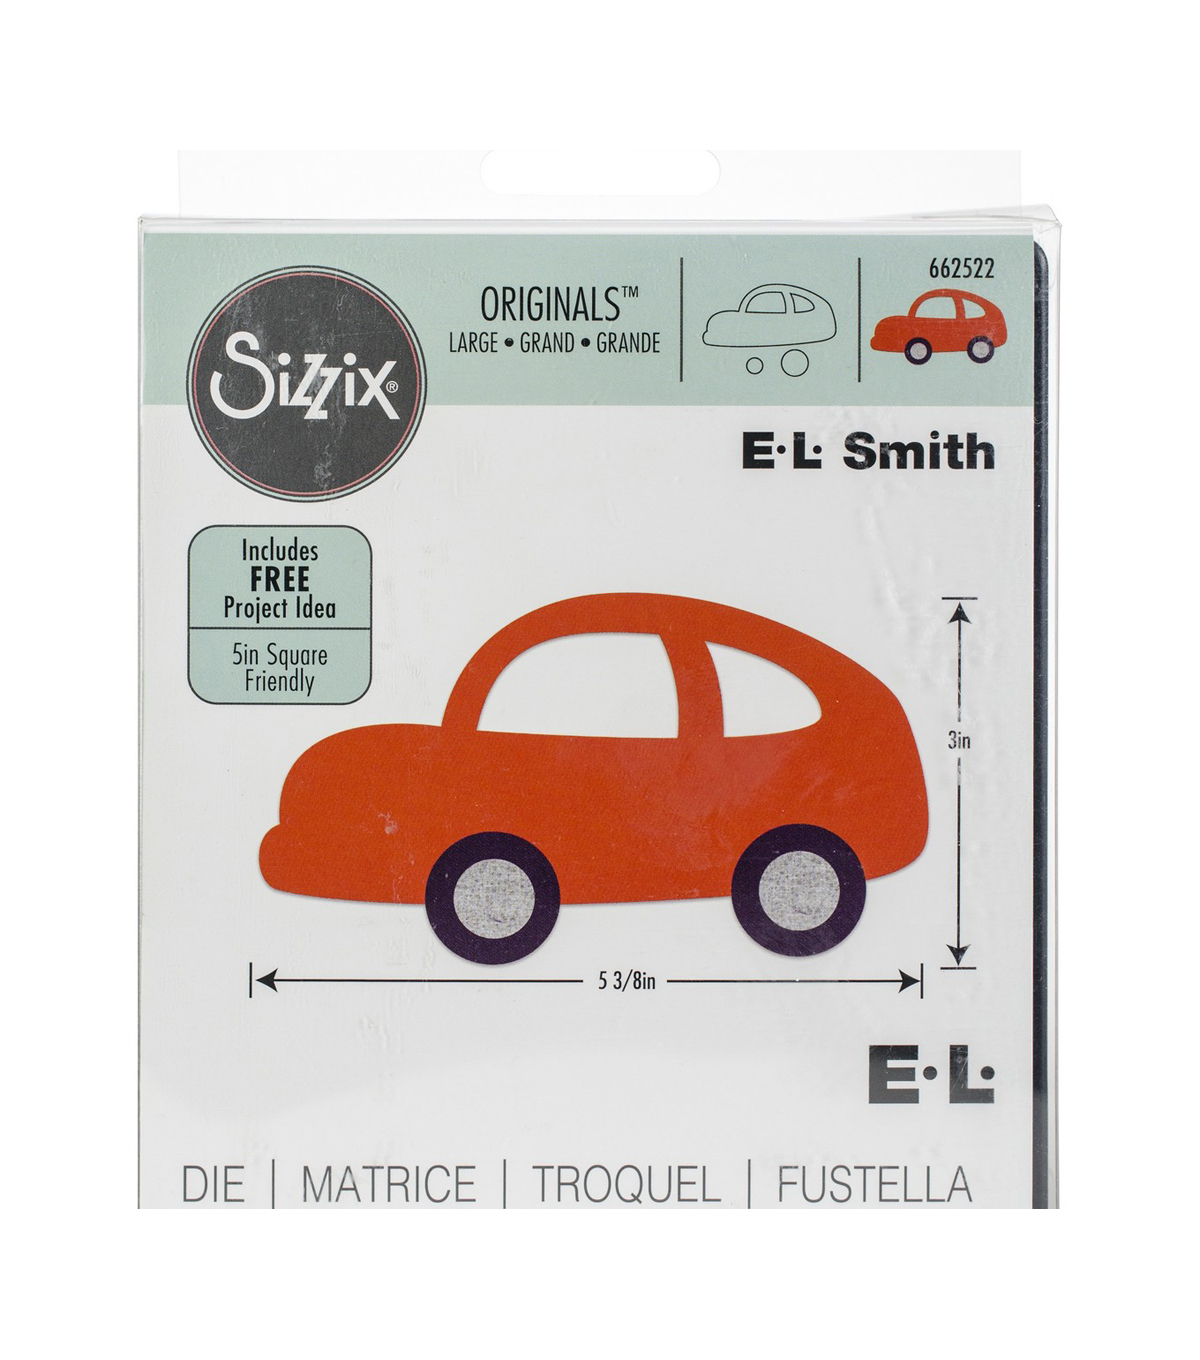 Sizzix Originals Large Die-Car #3 By E.L. Smith